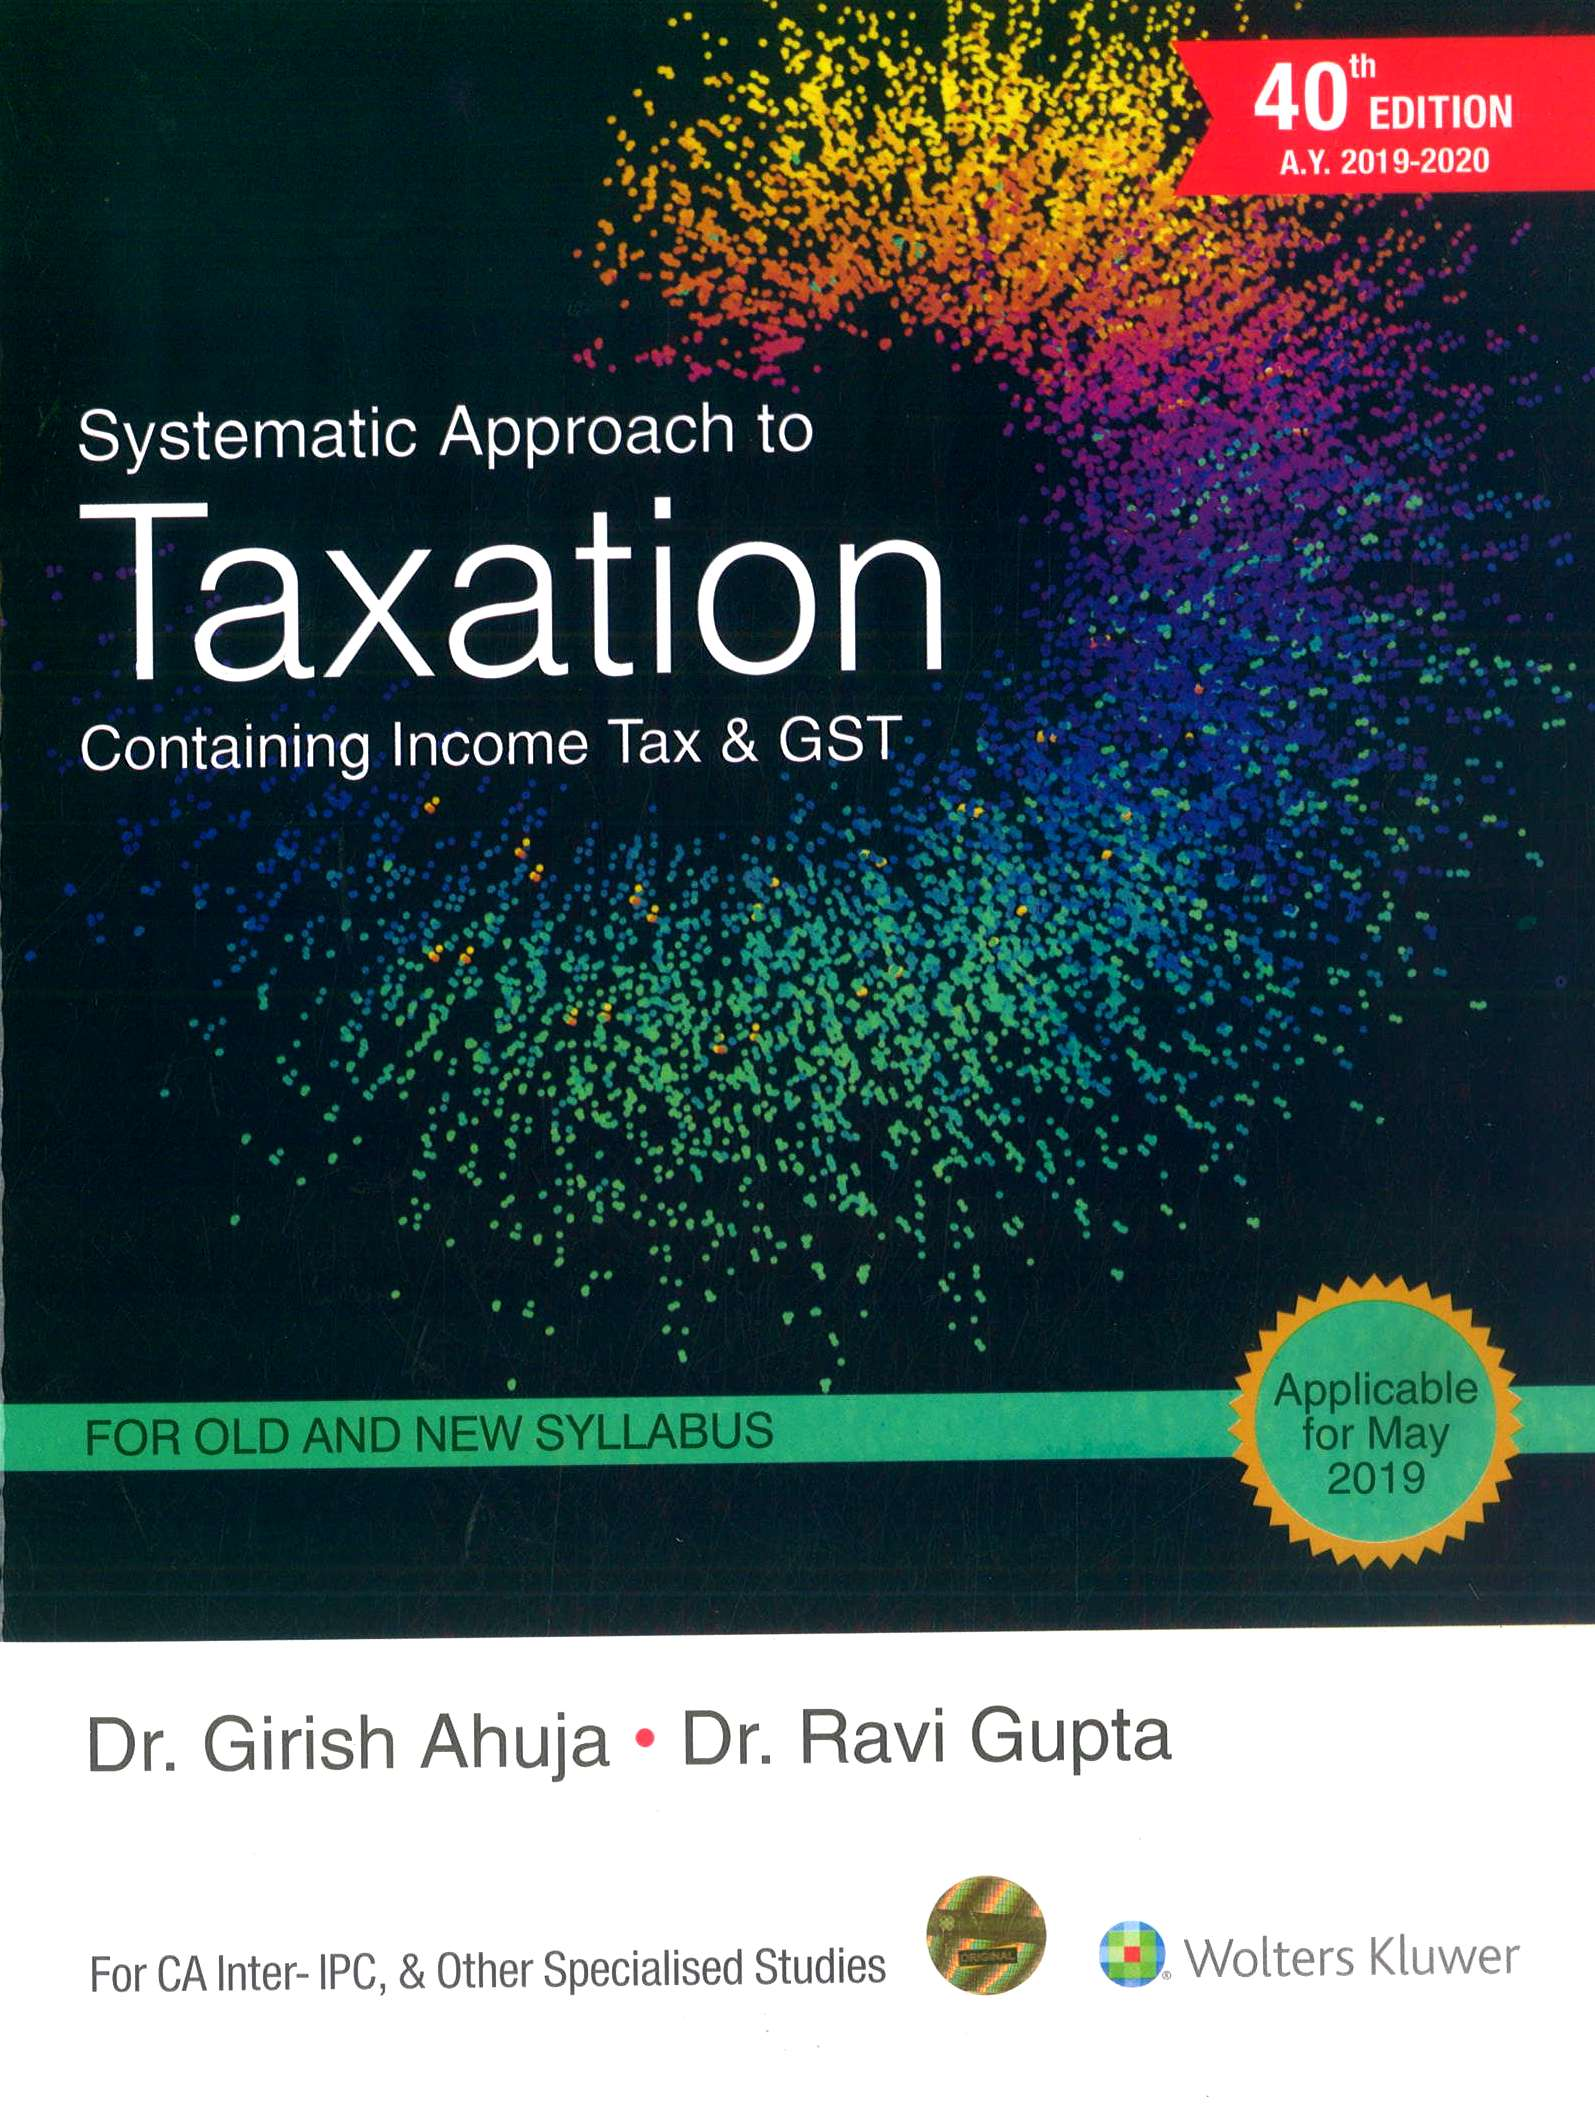 CCH Systematic Approach to Taxation Containing Income Tax & GST for Old And New Syllabus By Dr Girish Ahuja Dr Ravi Gupta Applicable For May 2019 Exam